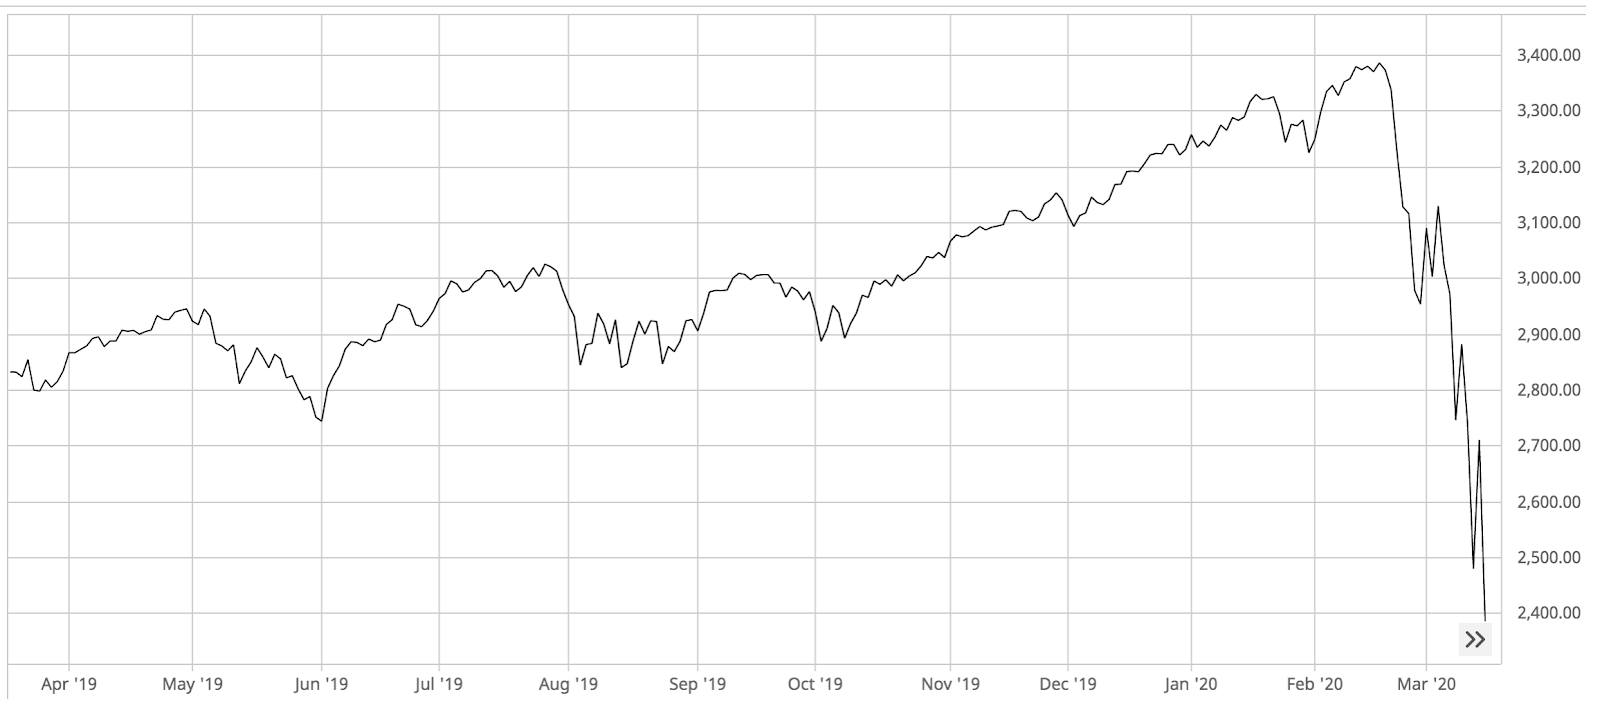 Graph of S&P 500 between March 2019 and March 2020